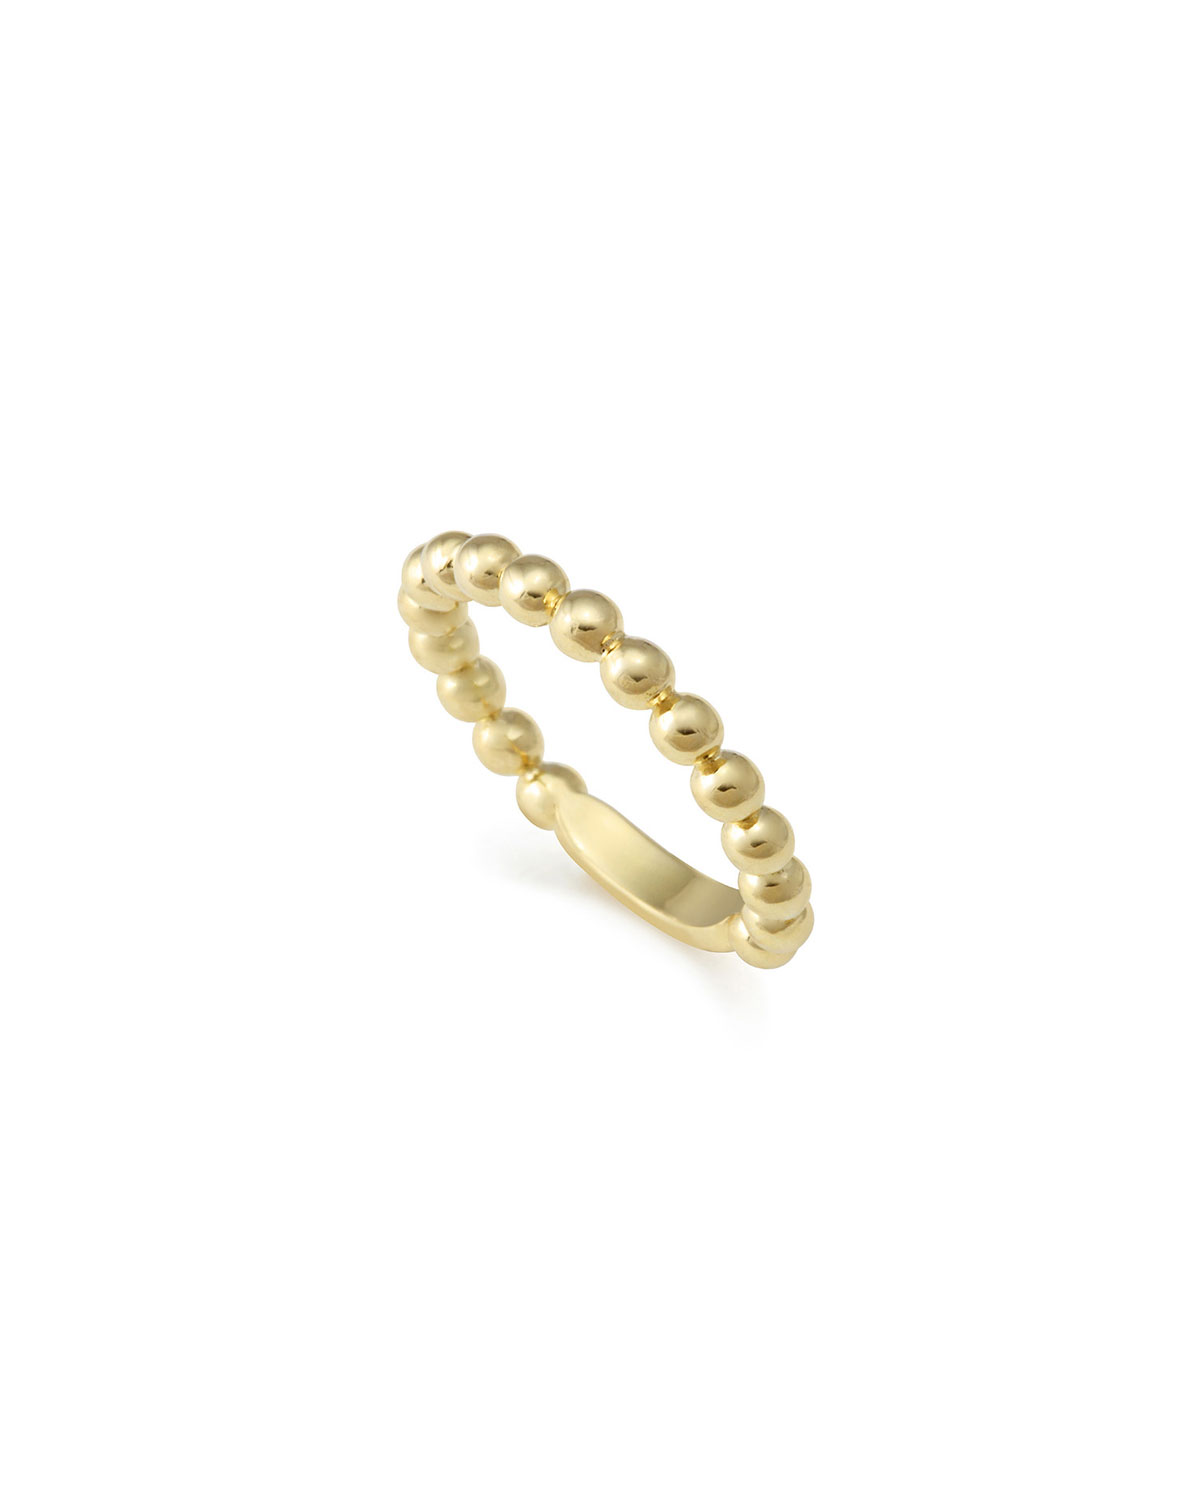 Lagos 18K Gold Stacking Ring, Size 7